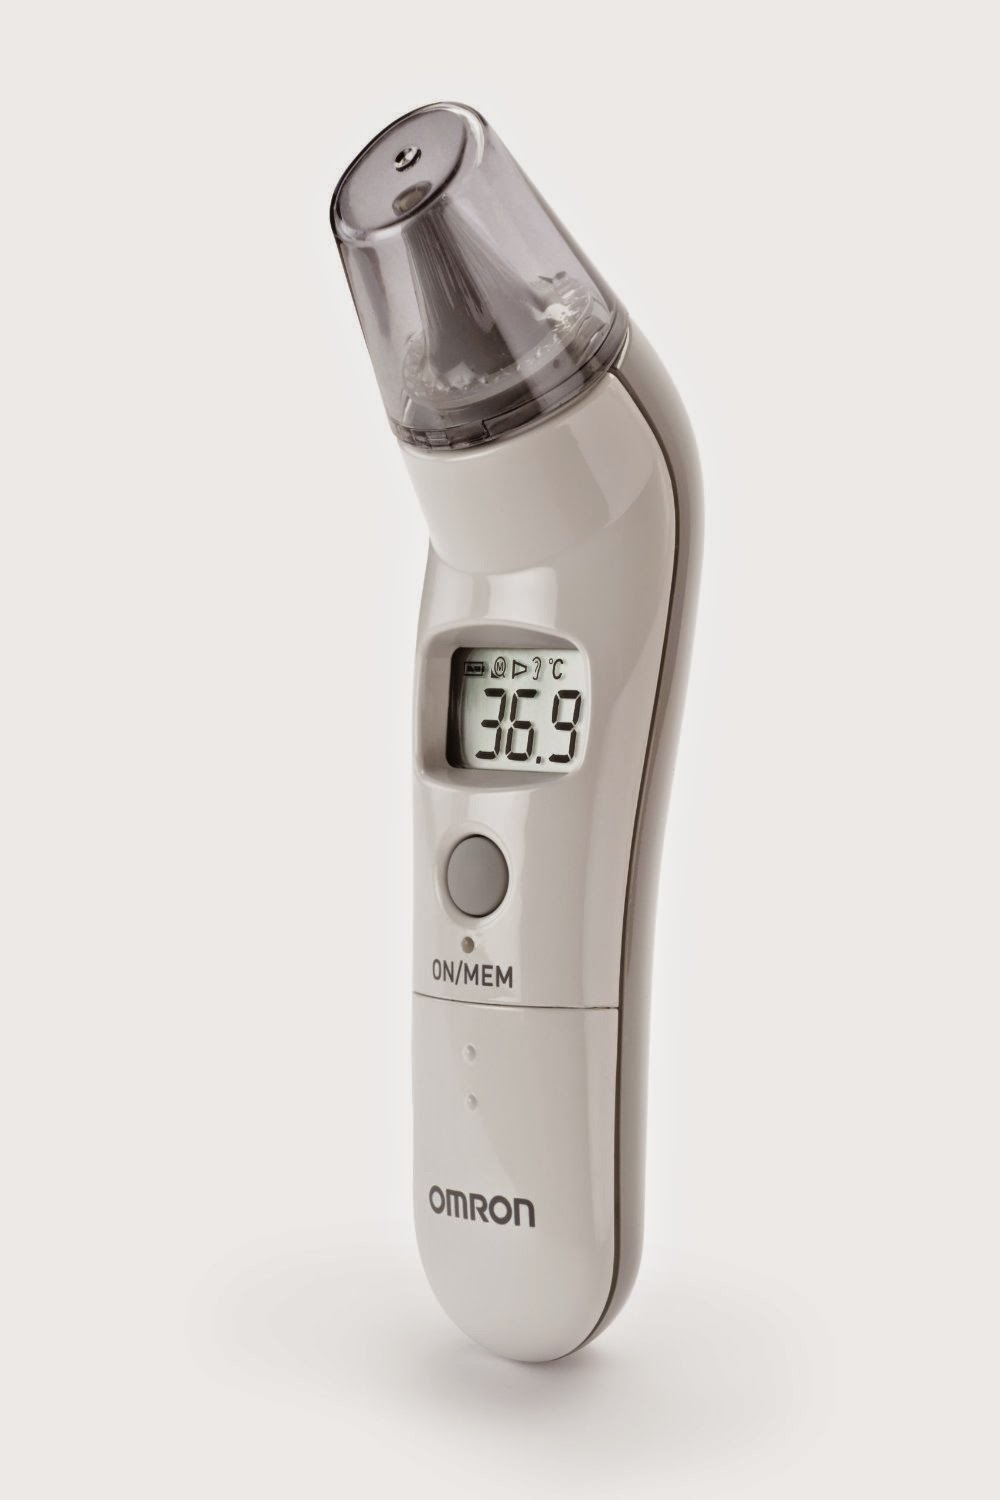 Buy Omron TH839S for Rs.1899 at Amazon